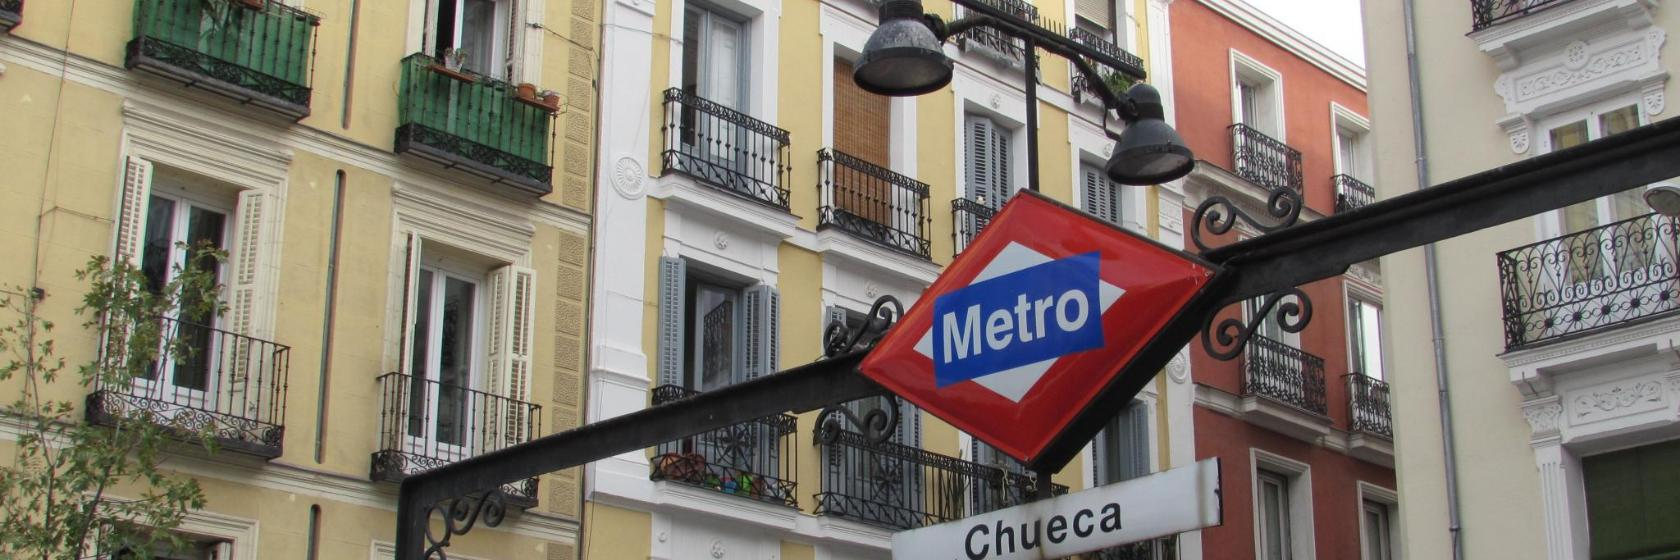 The 10 best hotels near Chueca Metro Station in Madrid, Spain